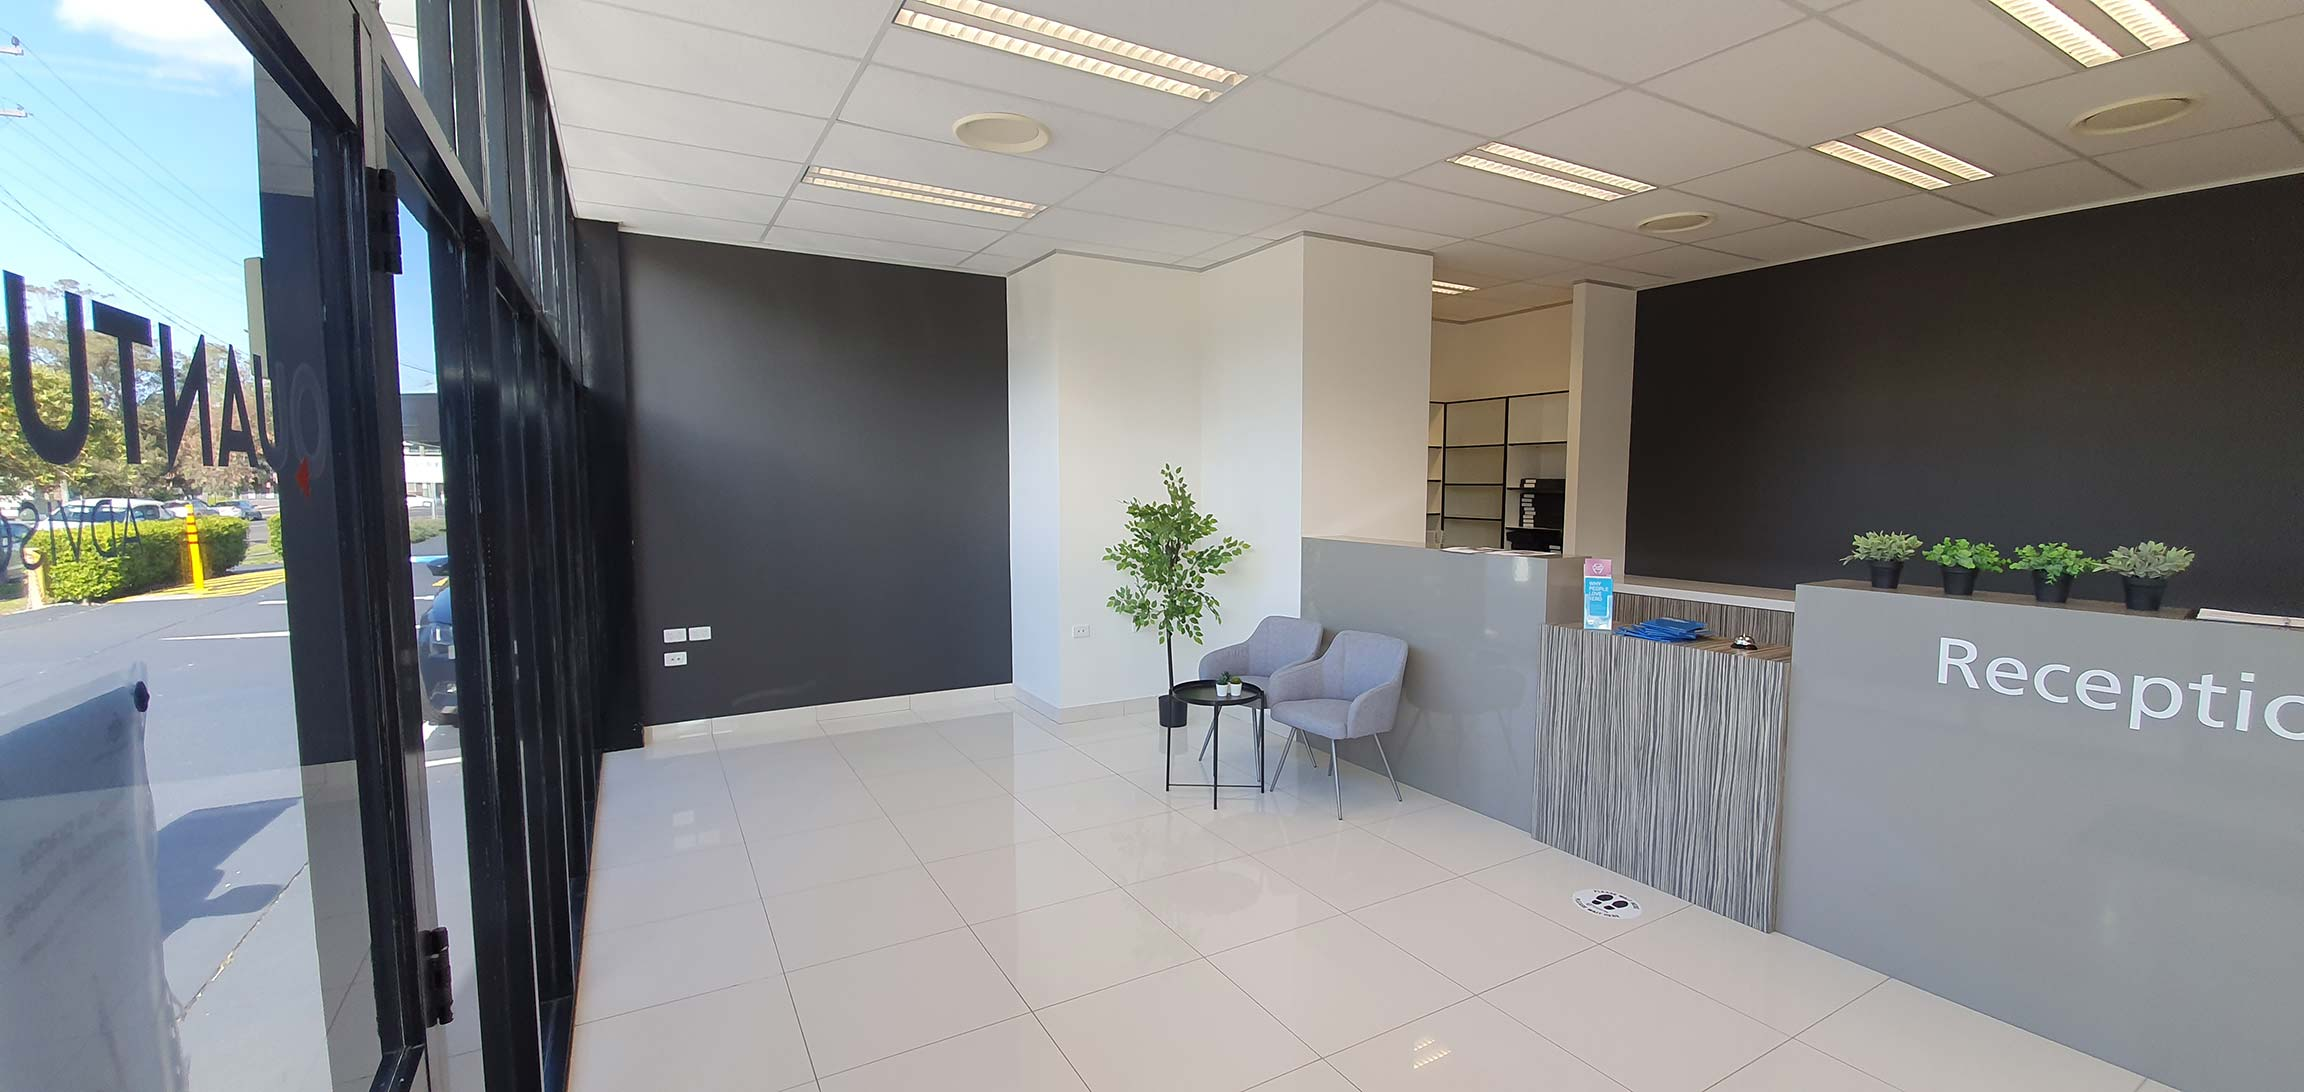 commercial office painting